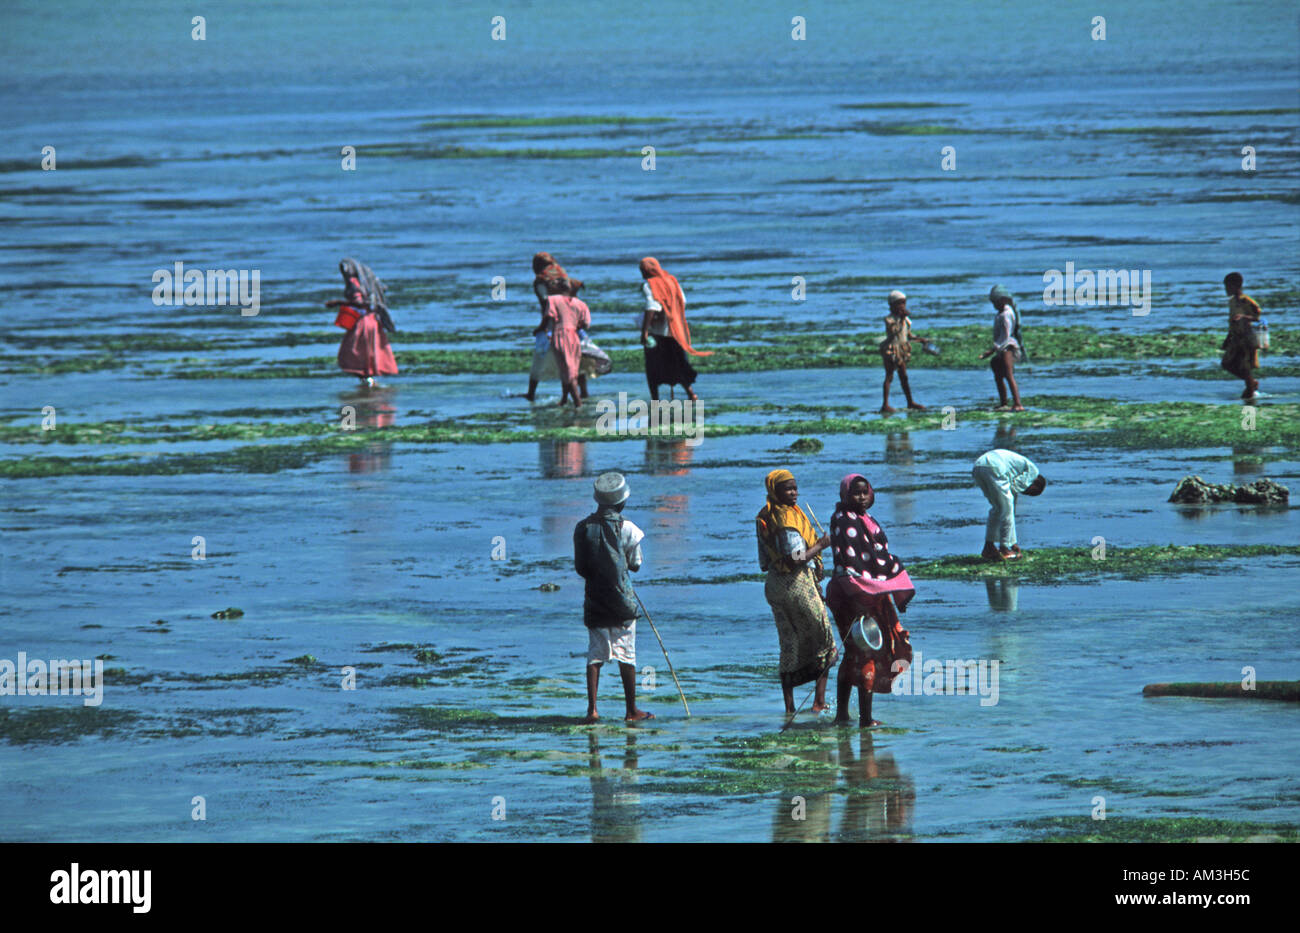 Local villagers flocking out at low tide to collect shellfish and seaweed Nungwi Unguja Zanzibar Tanzania East Africa - Stock Image